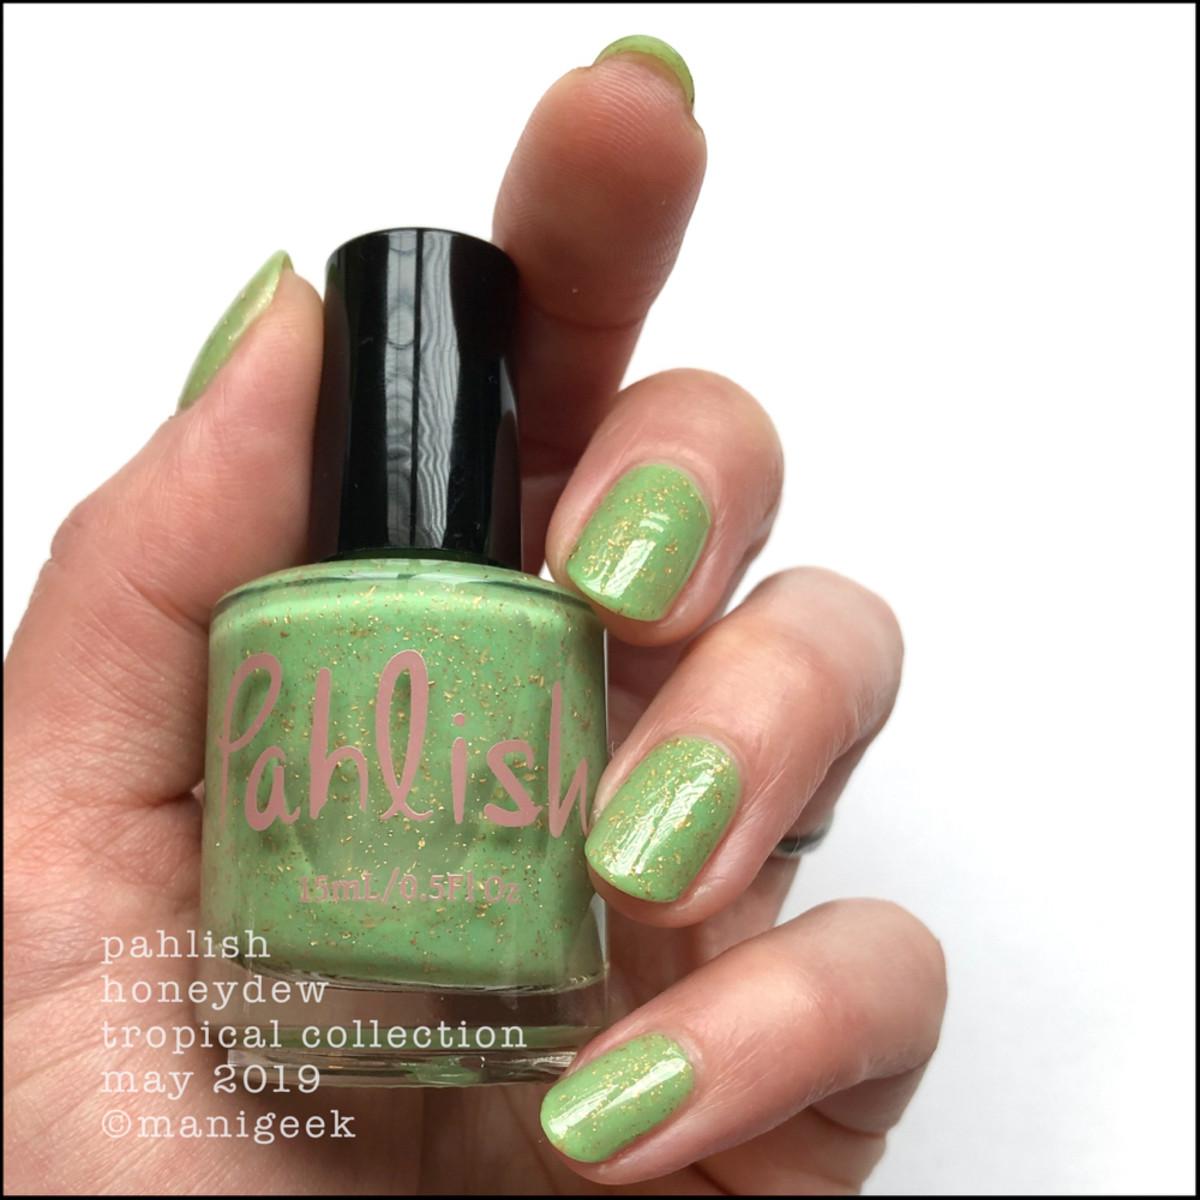 Pahlish Honeydew - Pahlish Tropical Collection May 2019